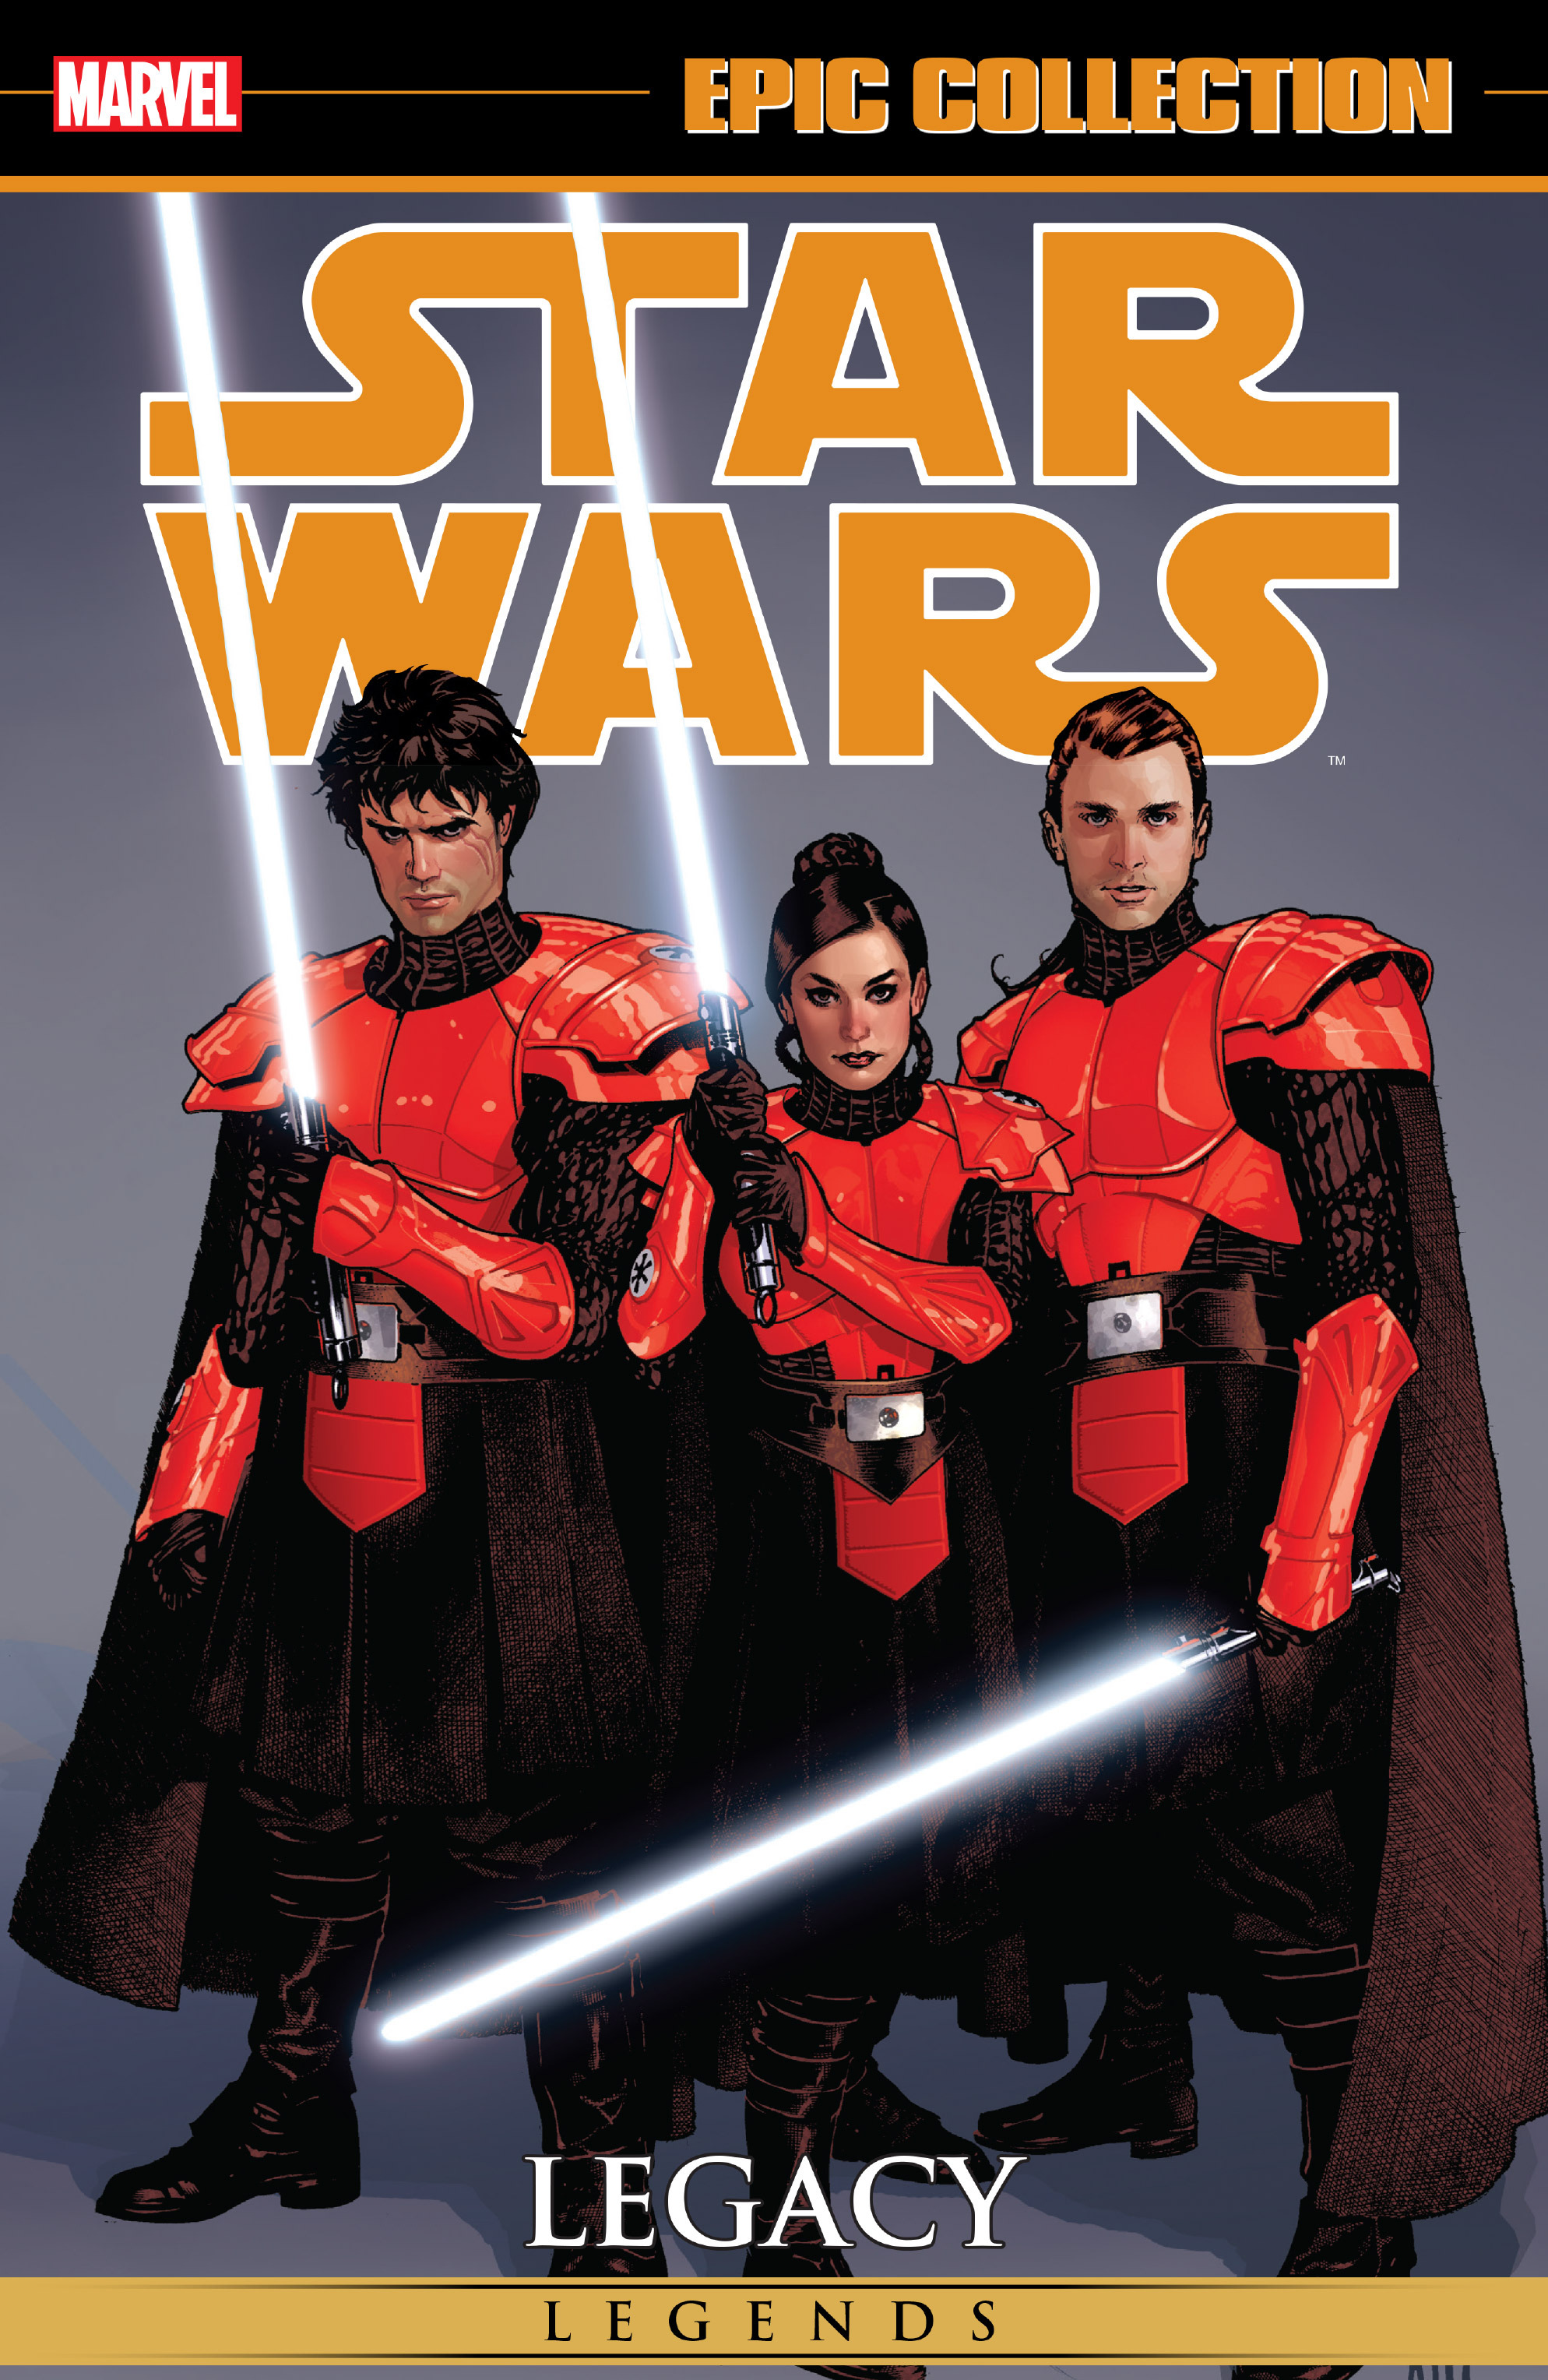 Epic Collection: Star Wars Legends - Legacy Vol 1